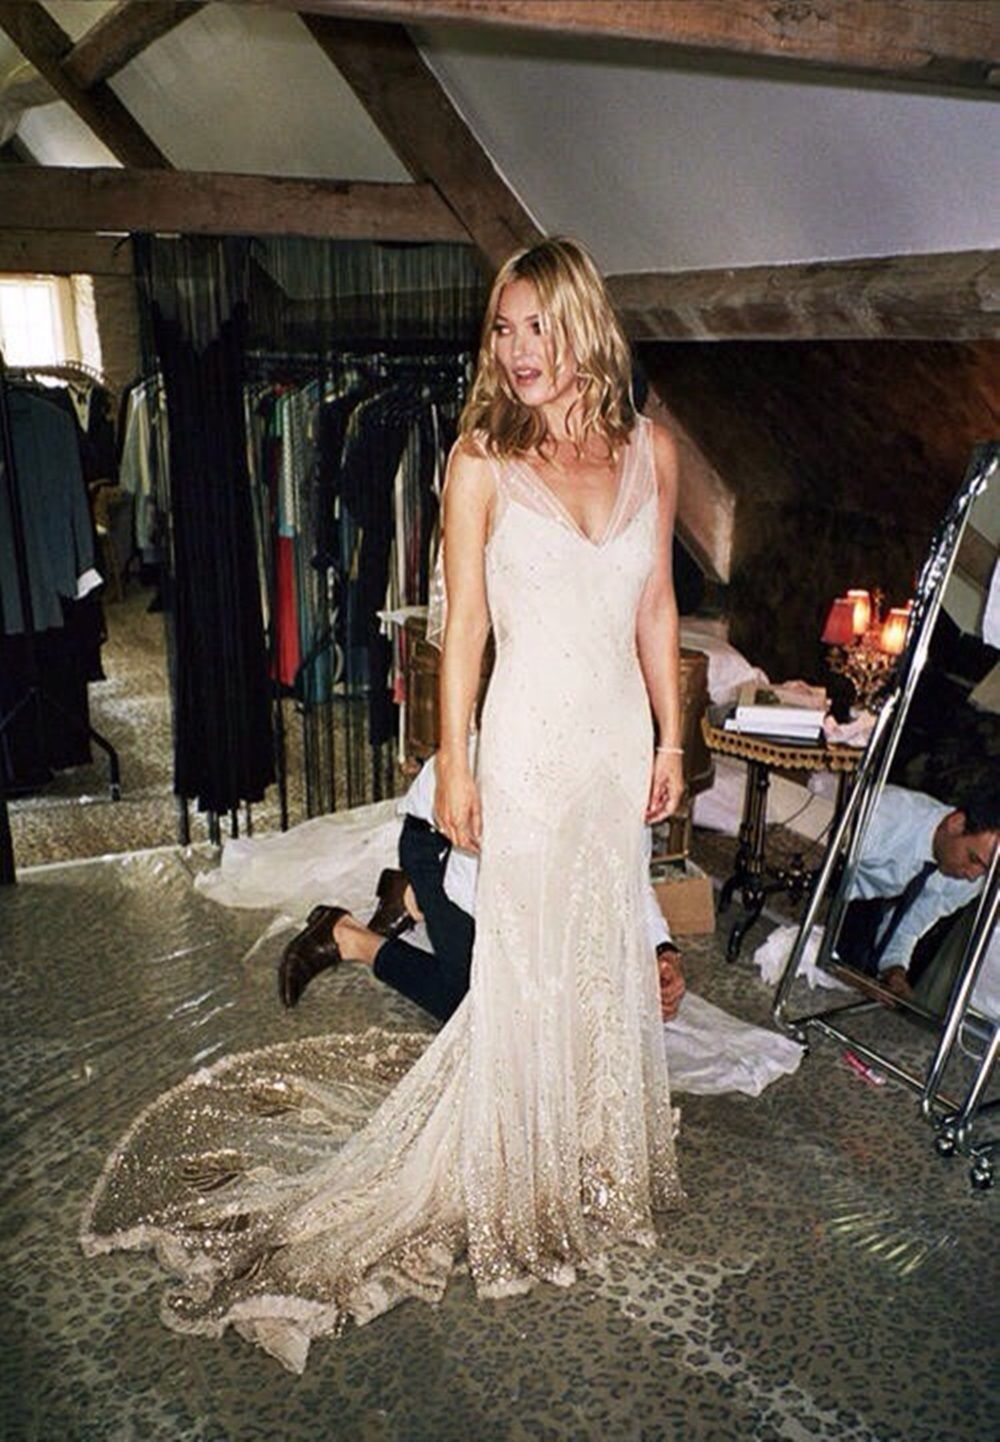 Alexis roche and kate moss 2011 kates wedding gown by john alexis roche and kate moss 2011 kates wedding gown by john galliano 1920s inspired lace veil with flower embroidery junglespirit Image collections